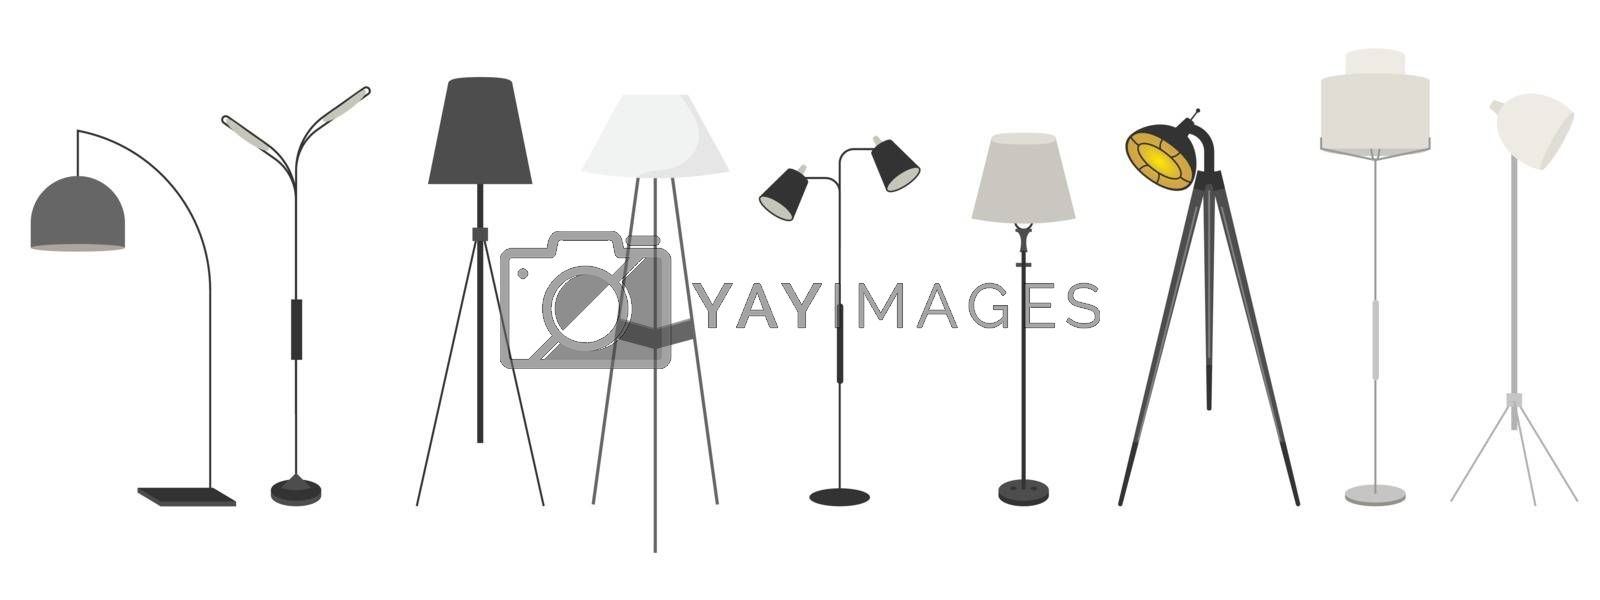 Lamps set. Vector clocks icons. Illustration for creating an interior for games and scenes. Mockups for design from different angles. Isolated on a white background. Vector illustration.